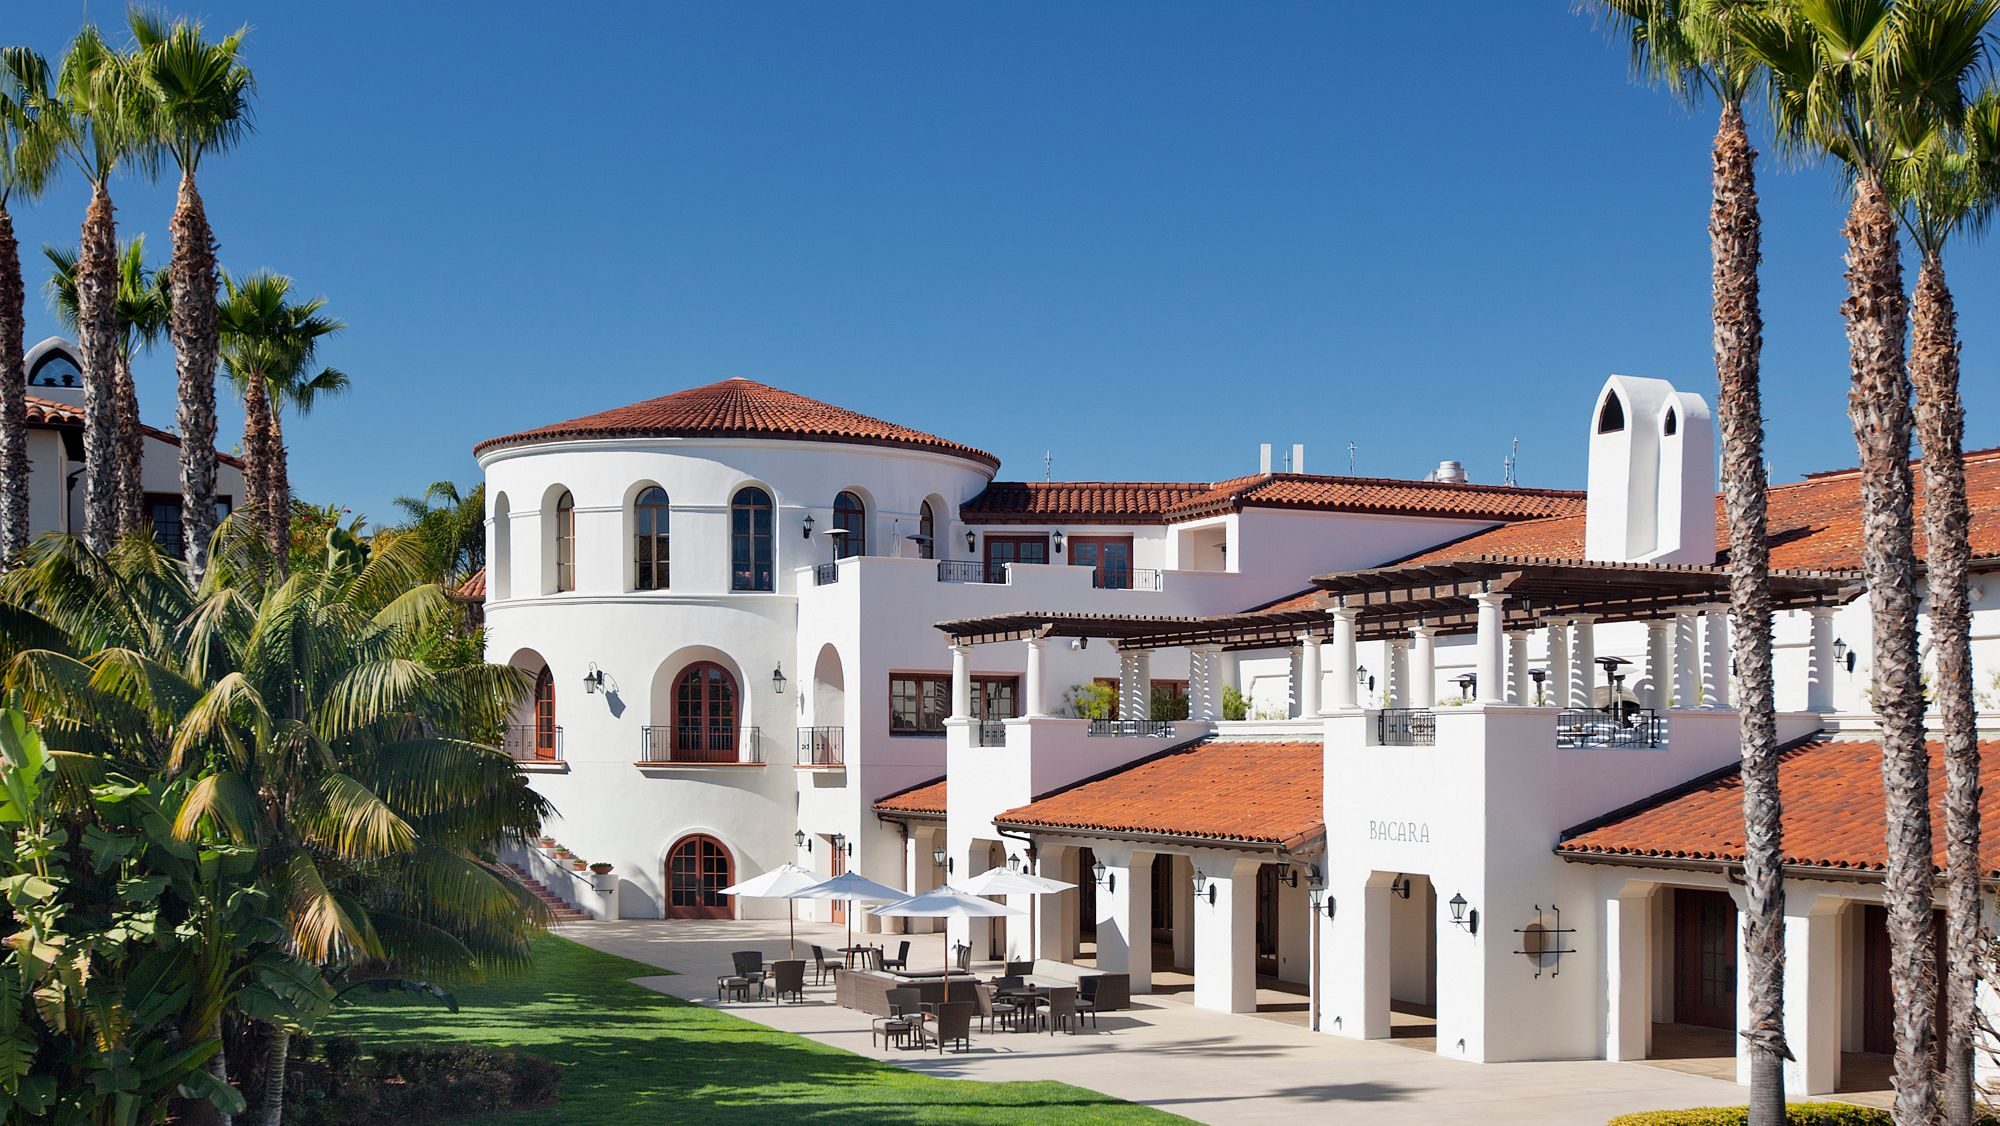 Hotel Rooms In Santa Barbara California